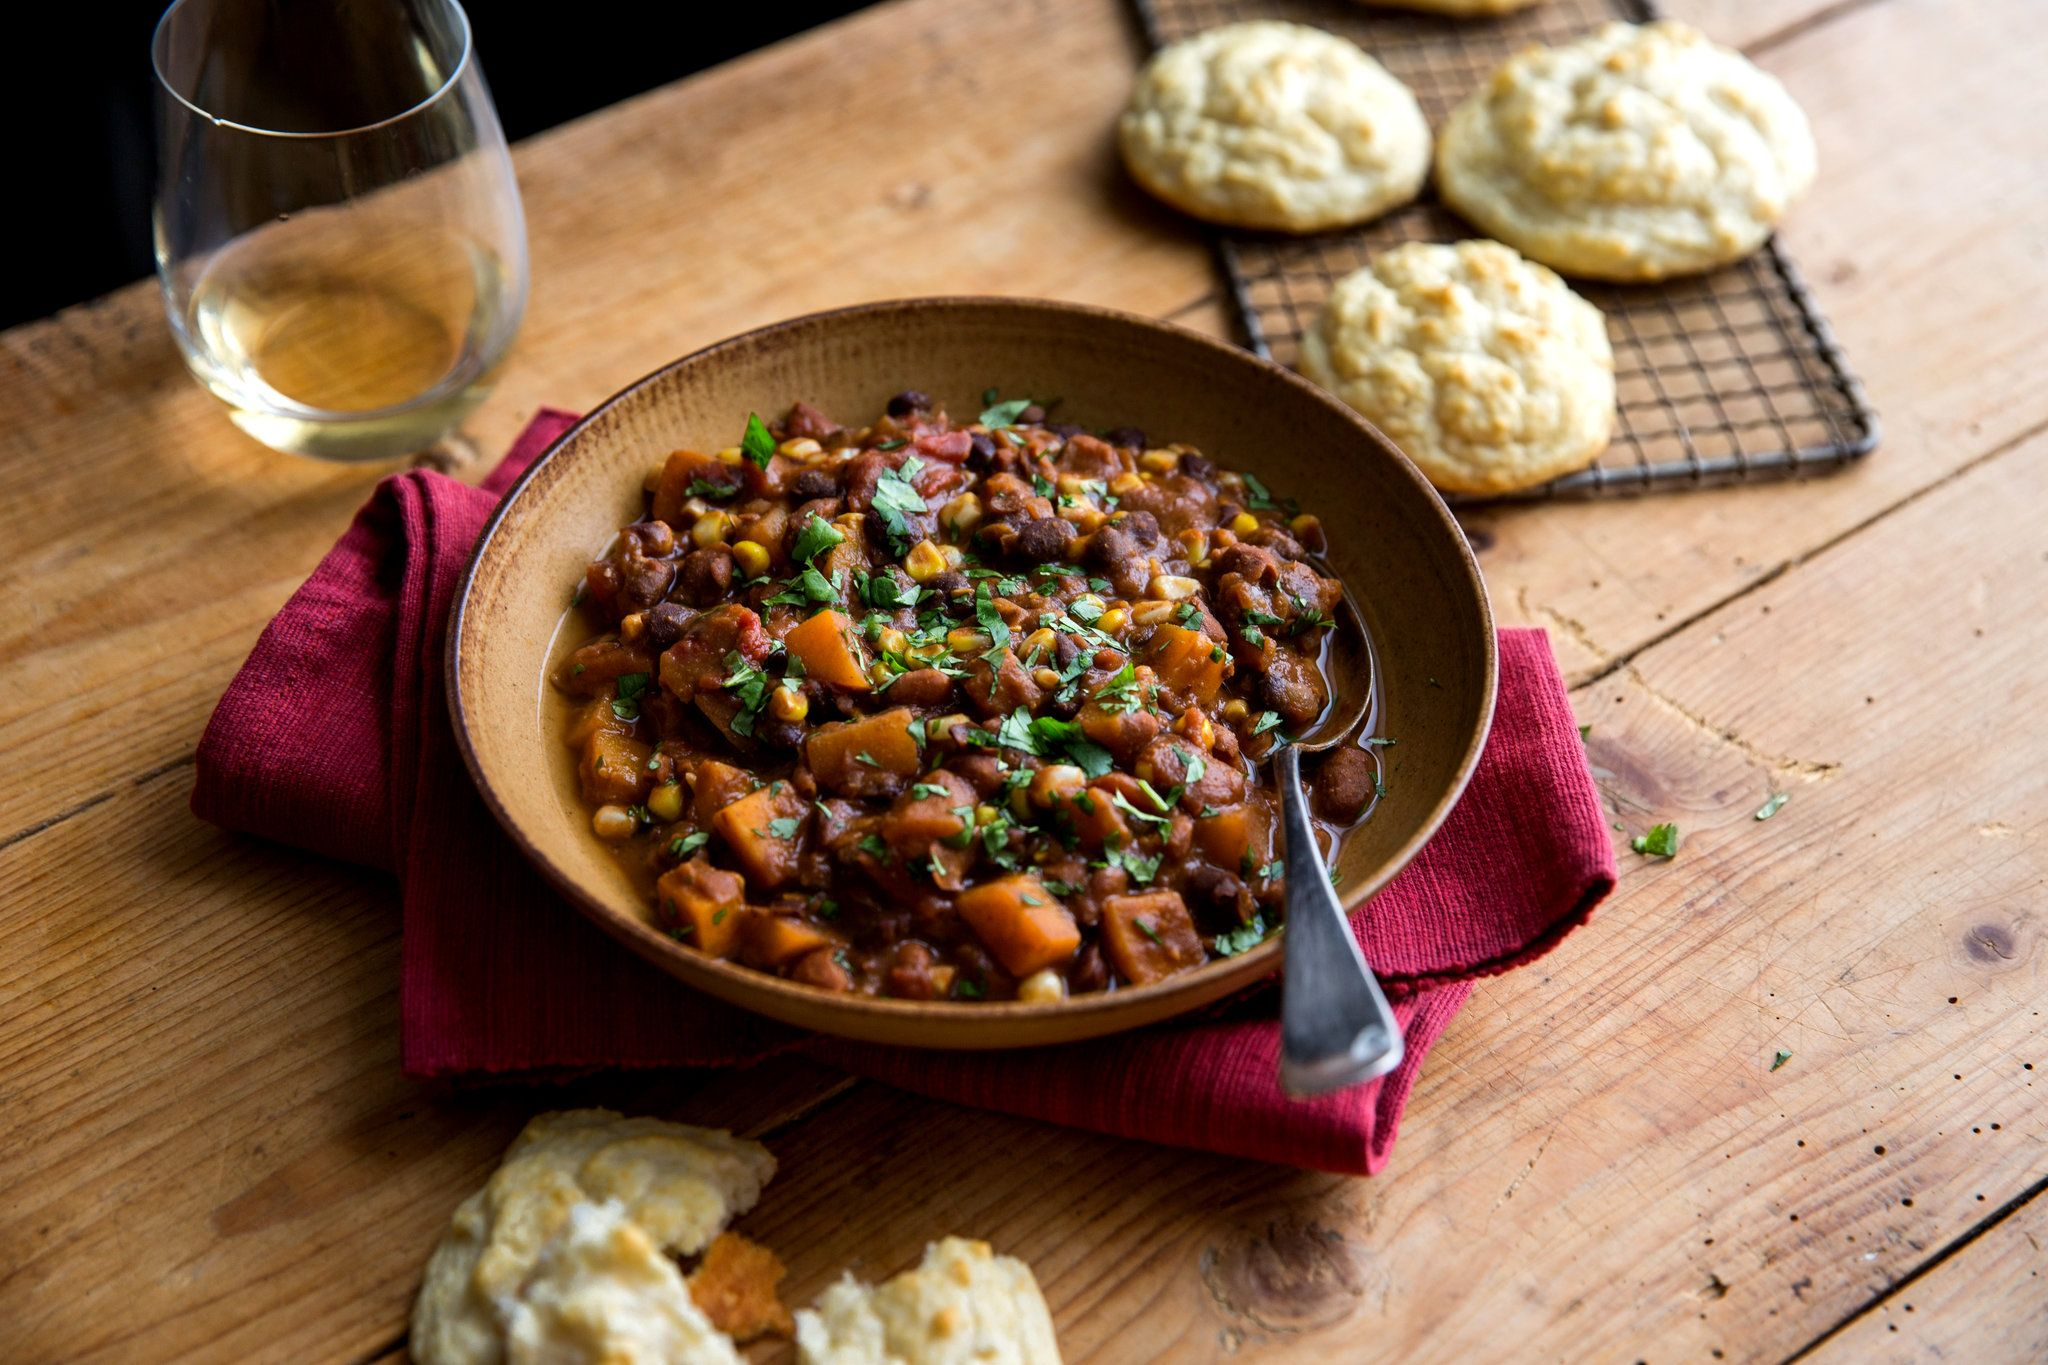 A Third Riff On The Native American Combination Of Beans Squash